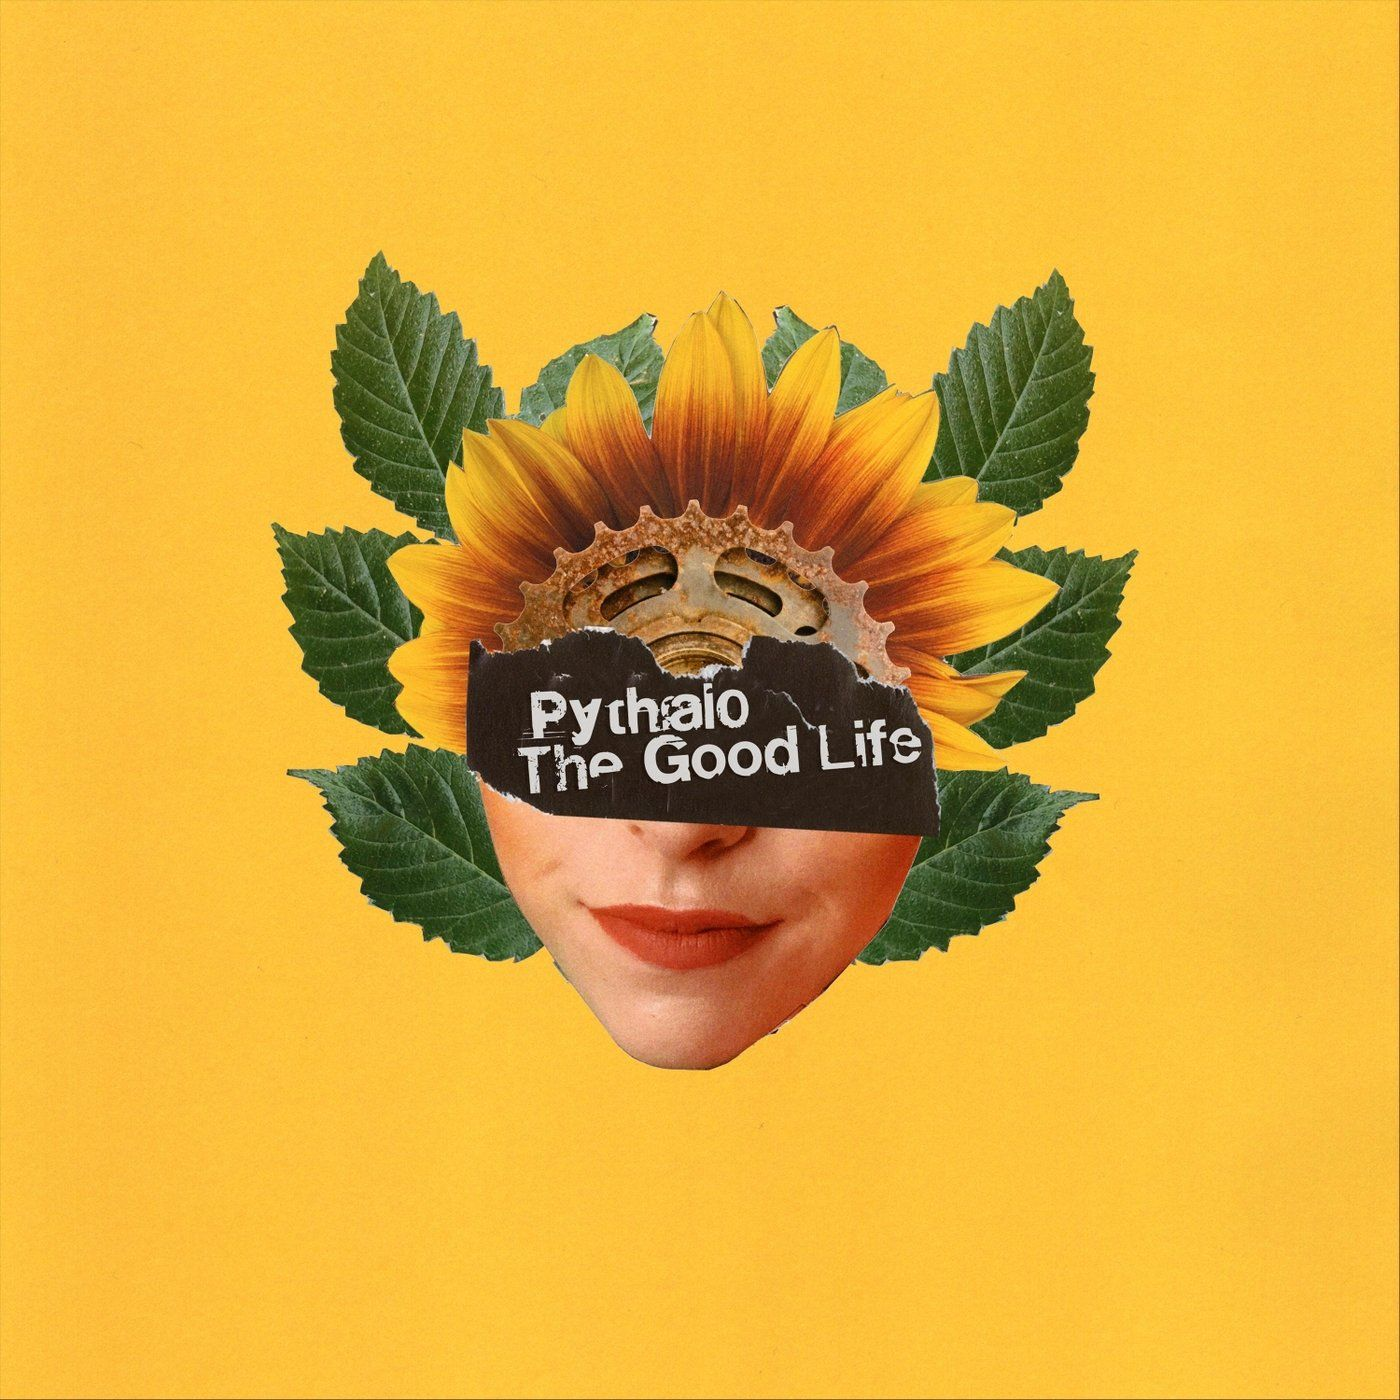 Pythalo - The Good Life (2021)